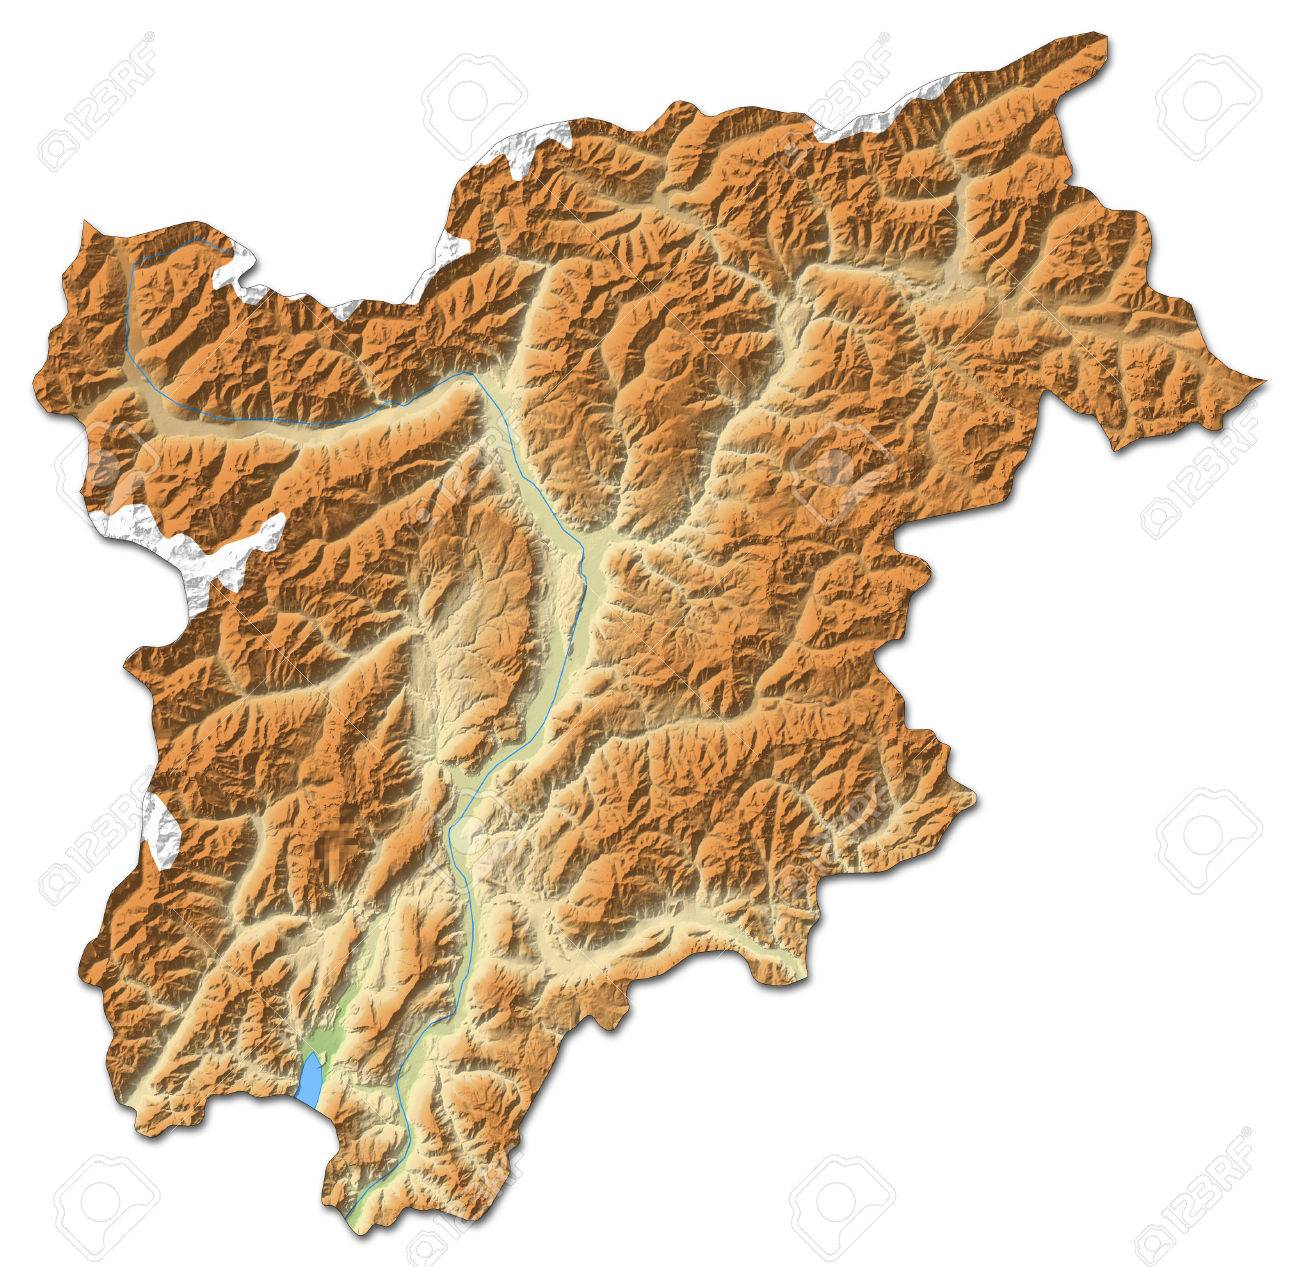 Relief map of Trentino-Alto Adige/S?dtirol, a province of Italy, with shaded relief. - 63797745